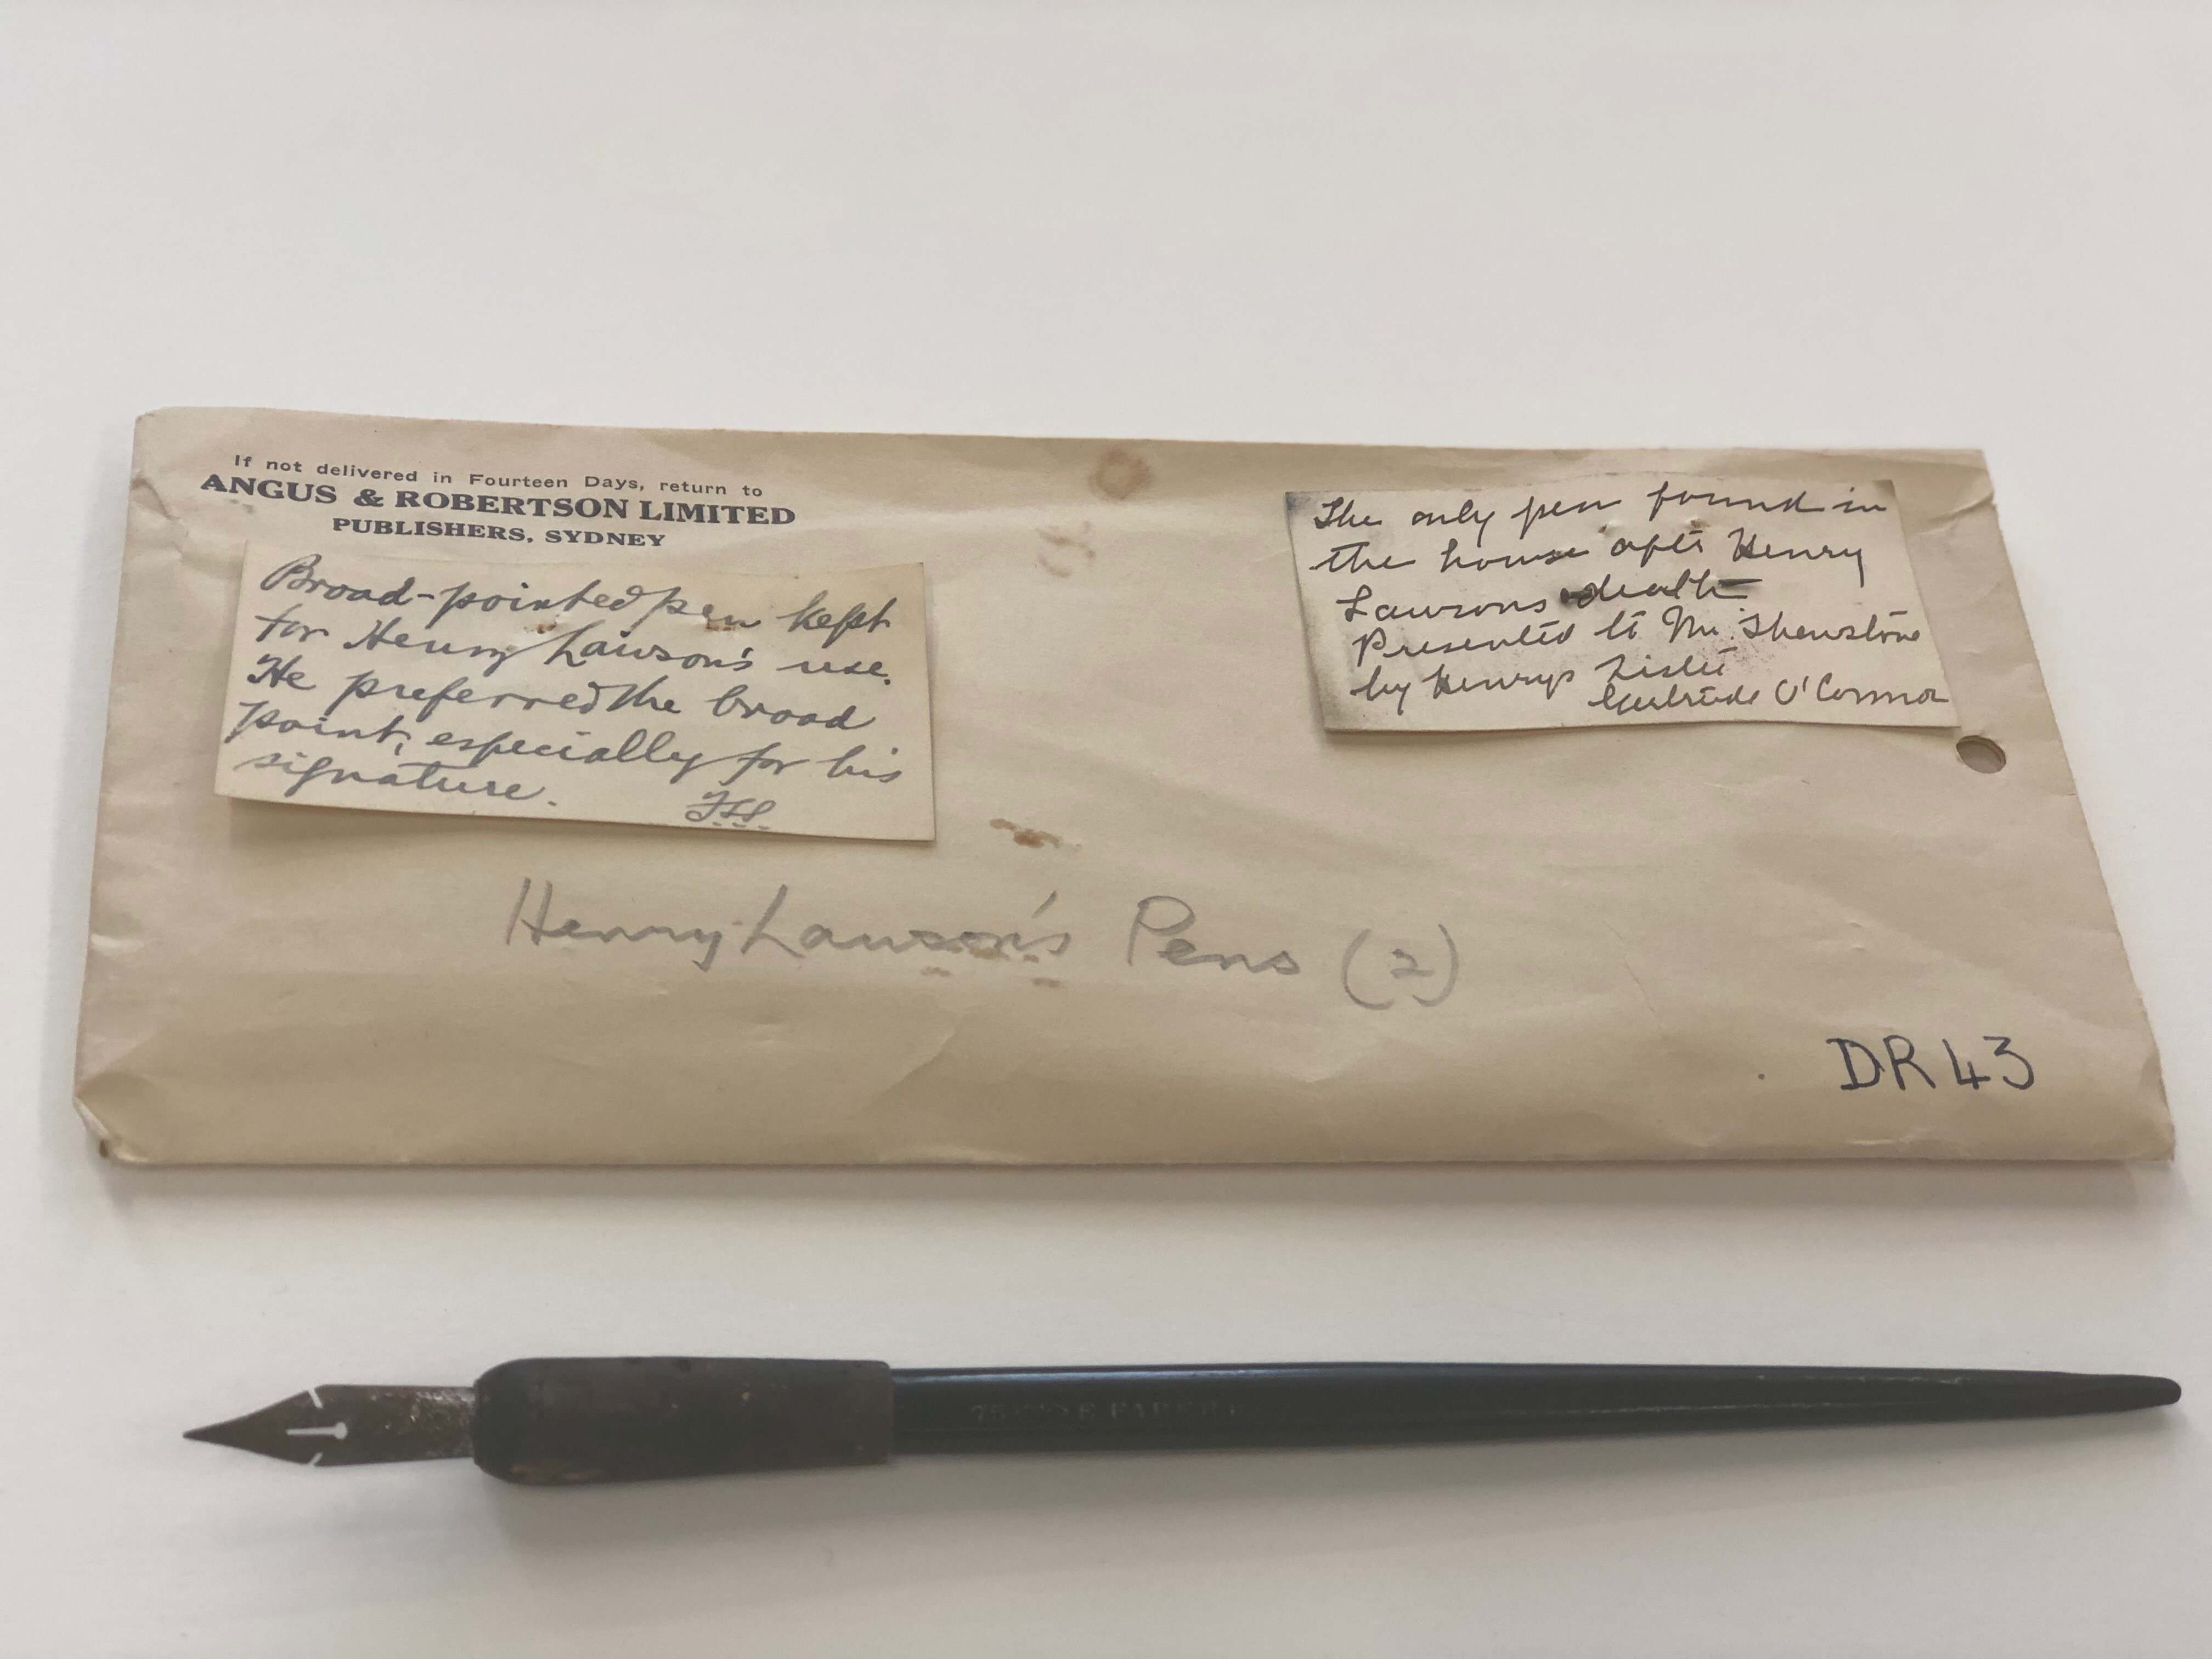 Henry Lawson pen and writing folder